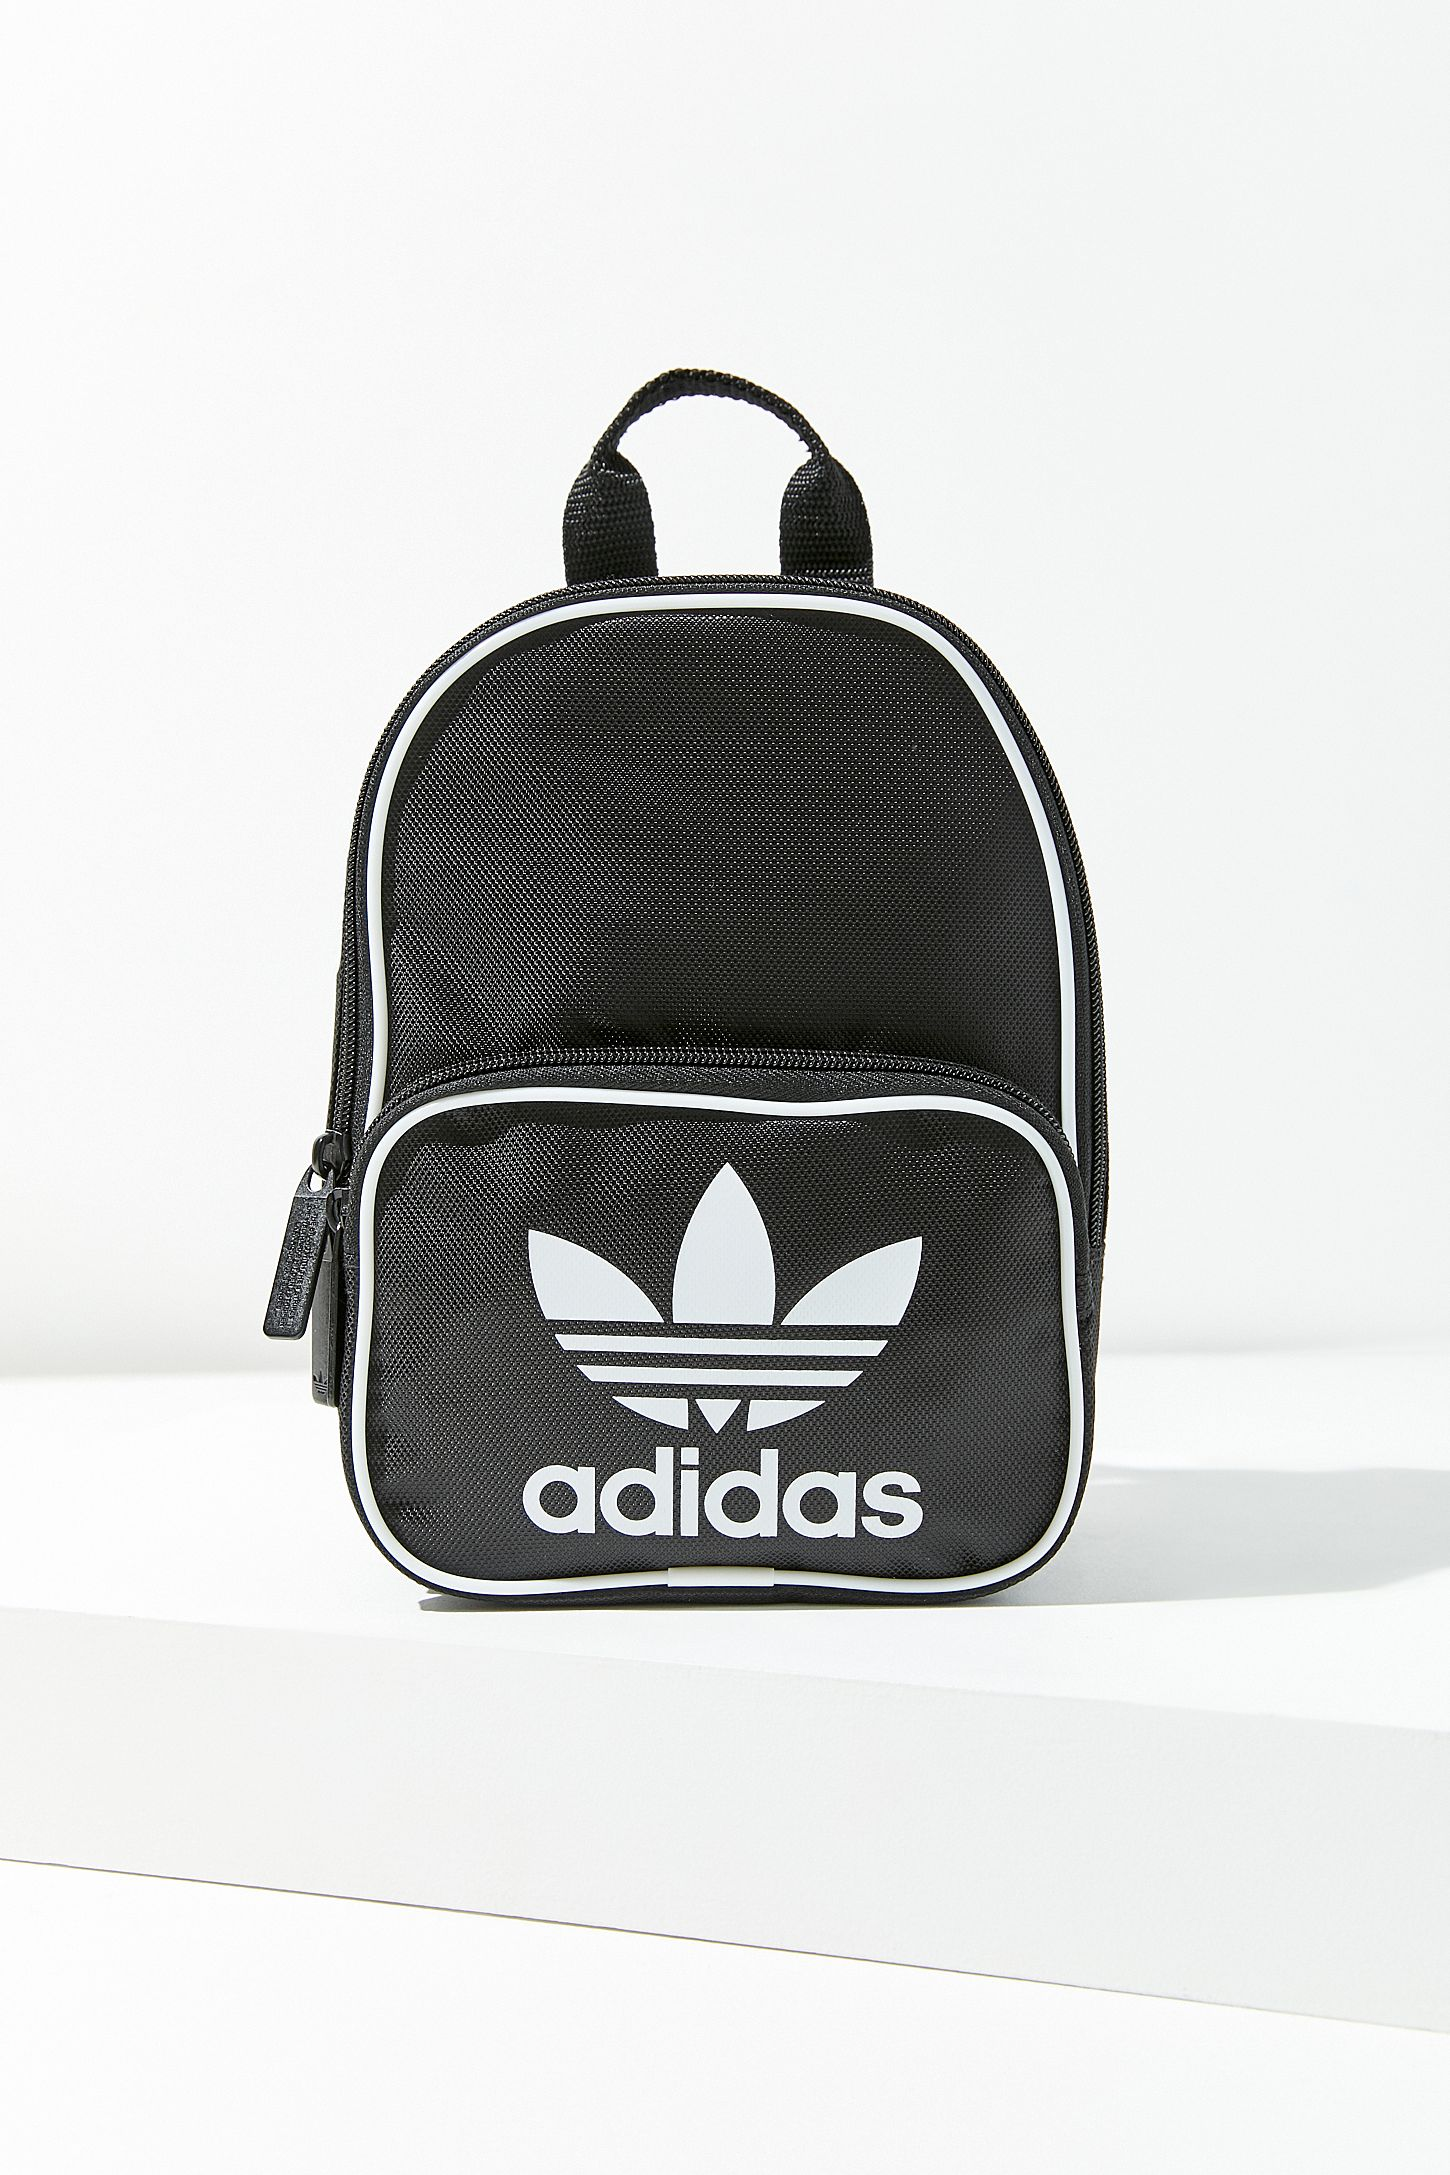 Slide View  5  adidas Originals Santiago Mini Backpack 3823678f5ed4f